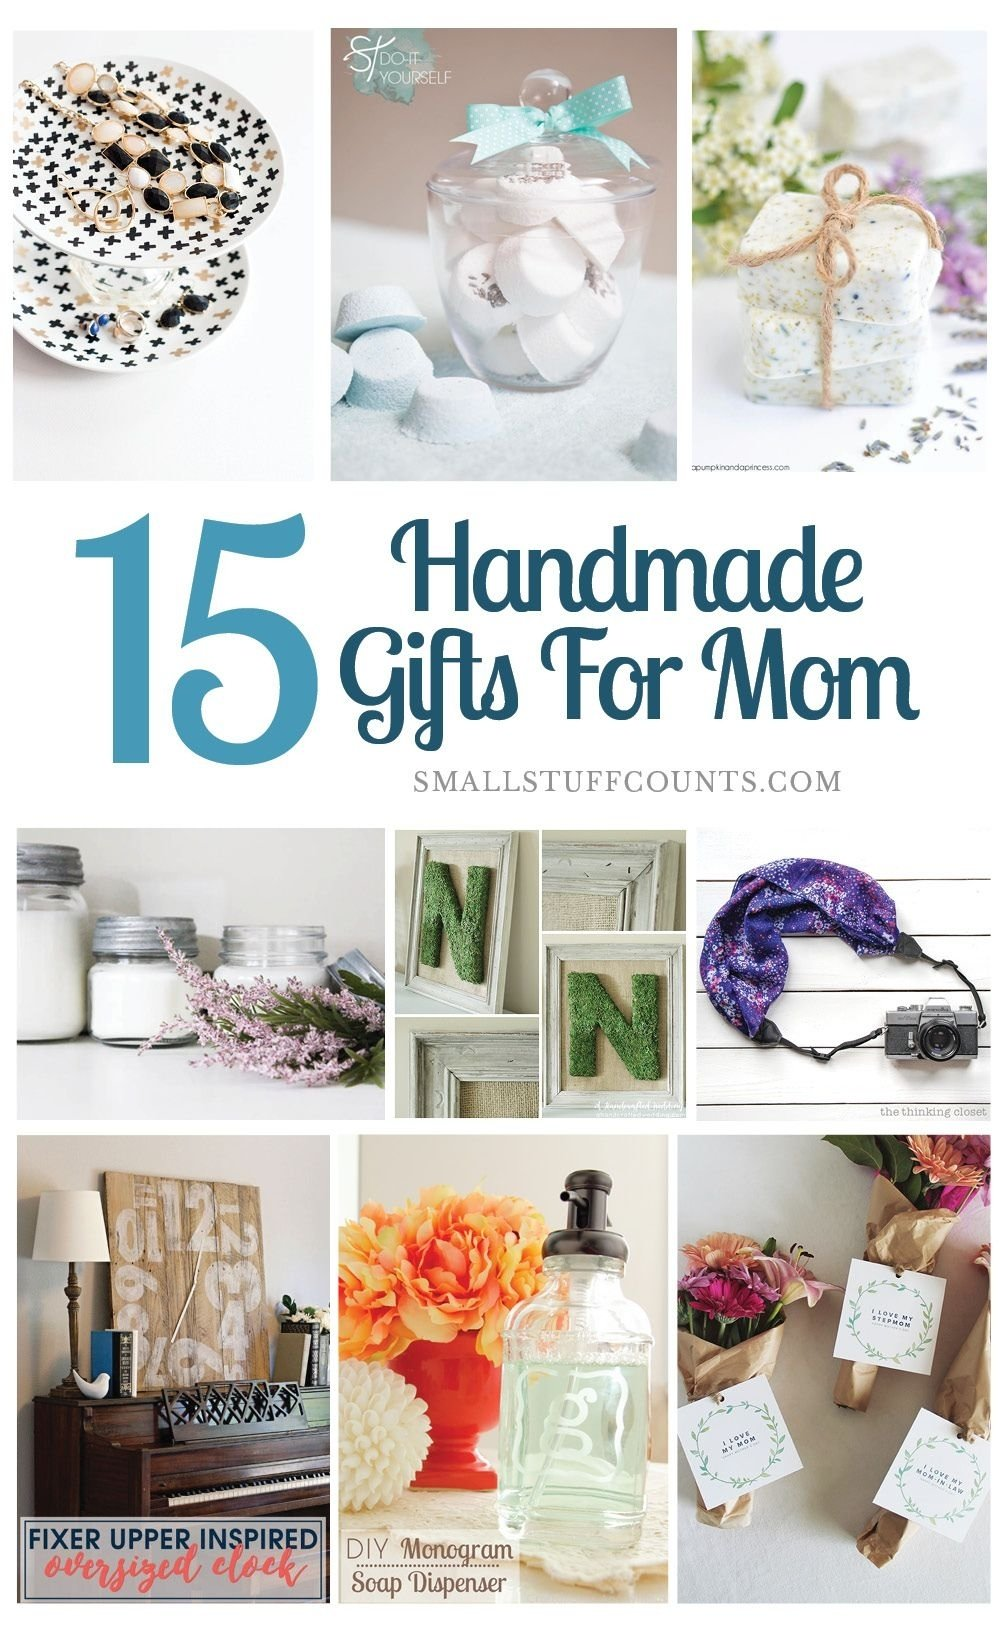 10 Awesome Homemade Birthday Gift Ideas For Mom beautiful diy gift ideas for mom gift 27 2020